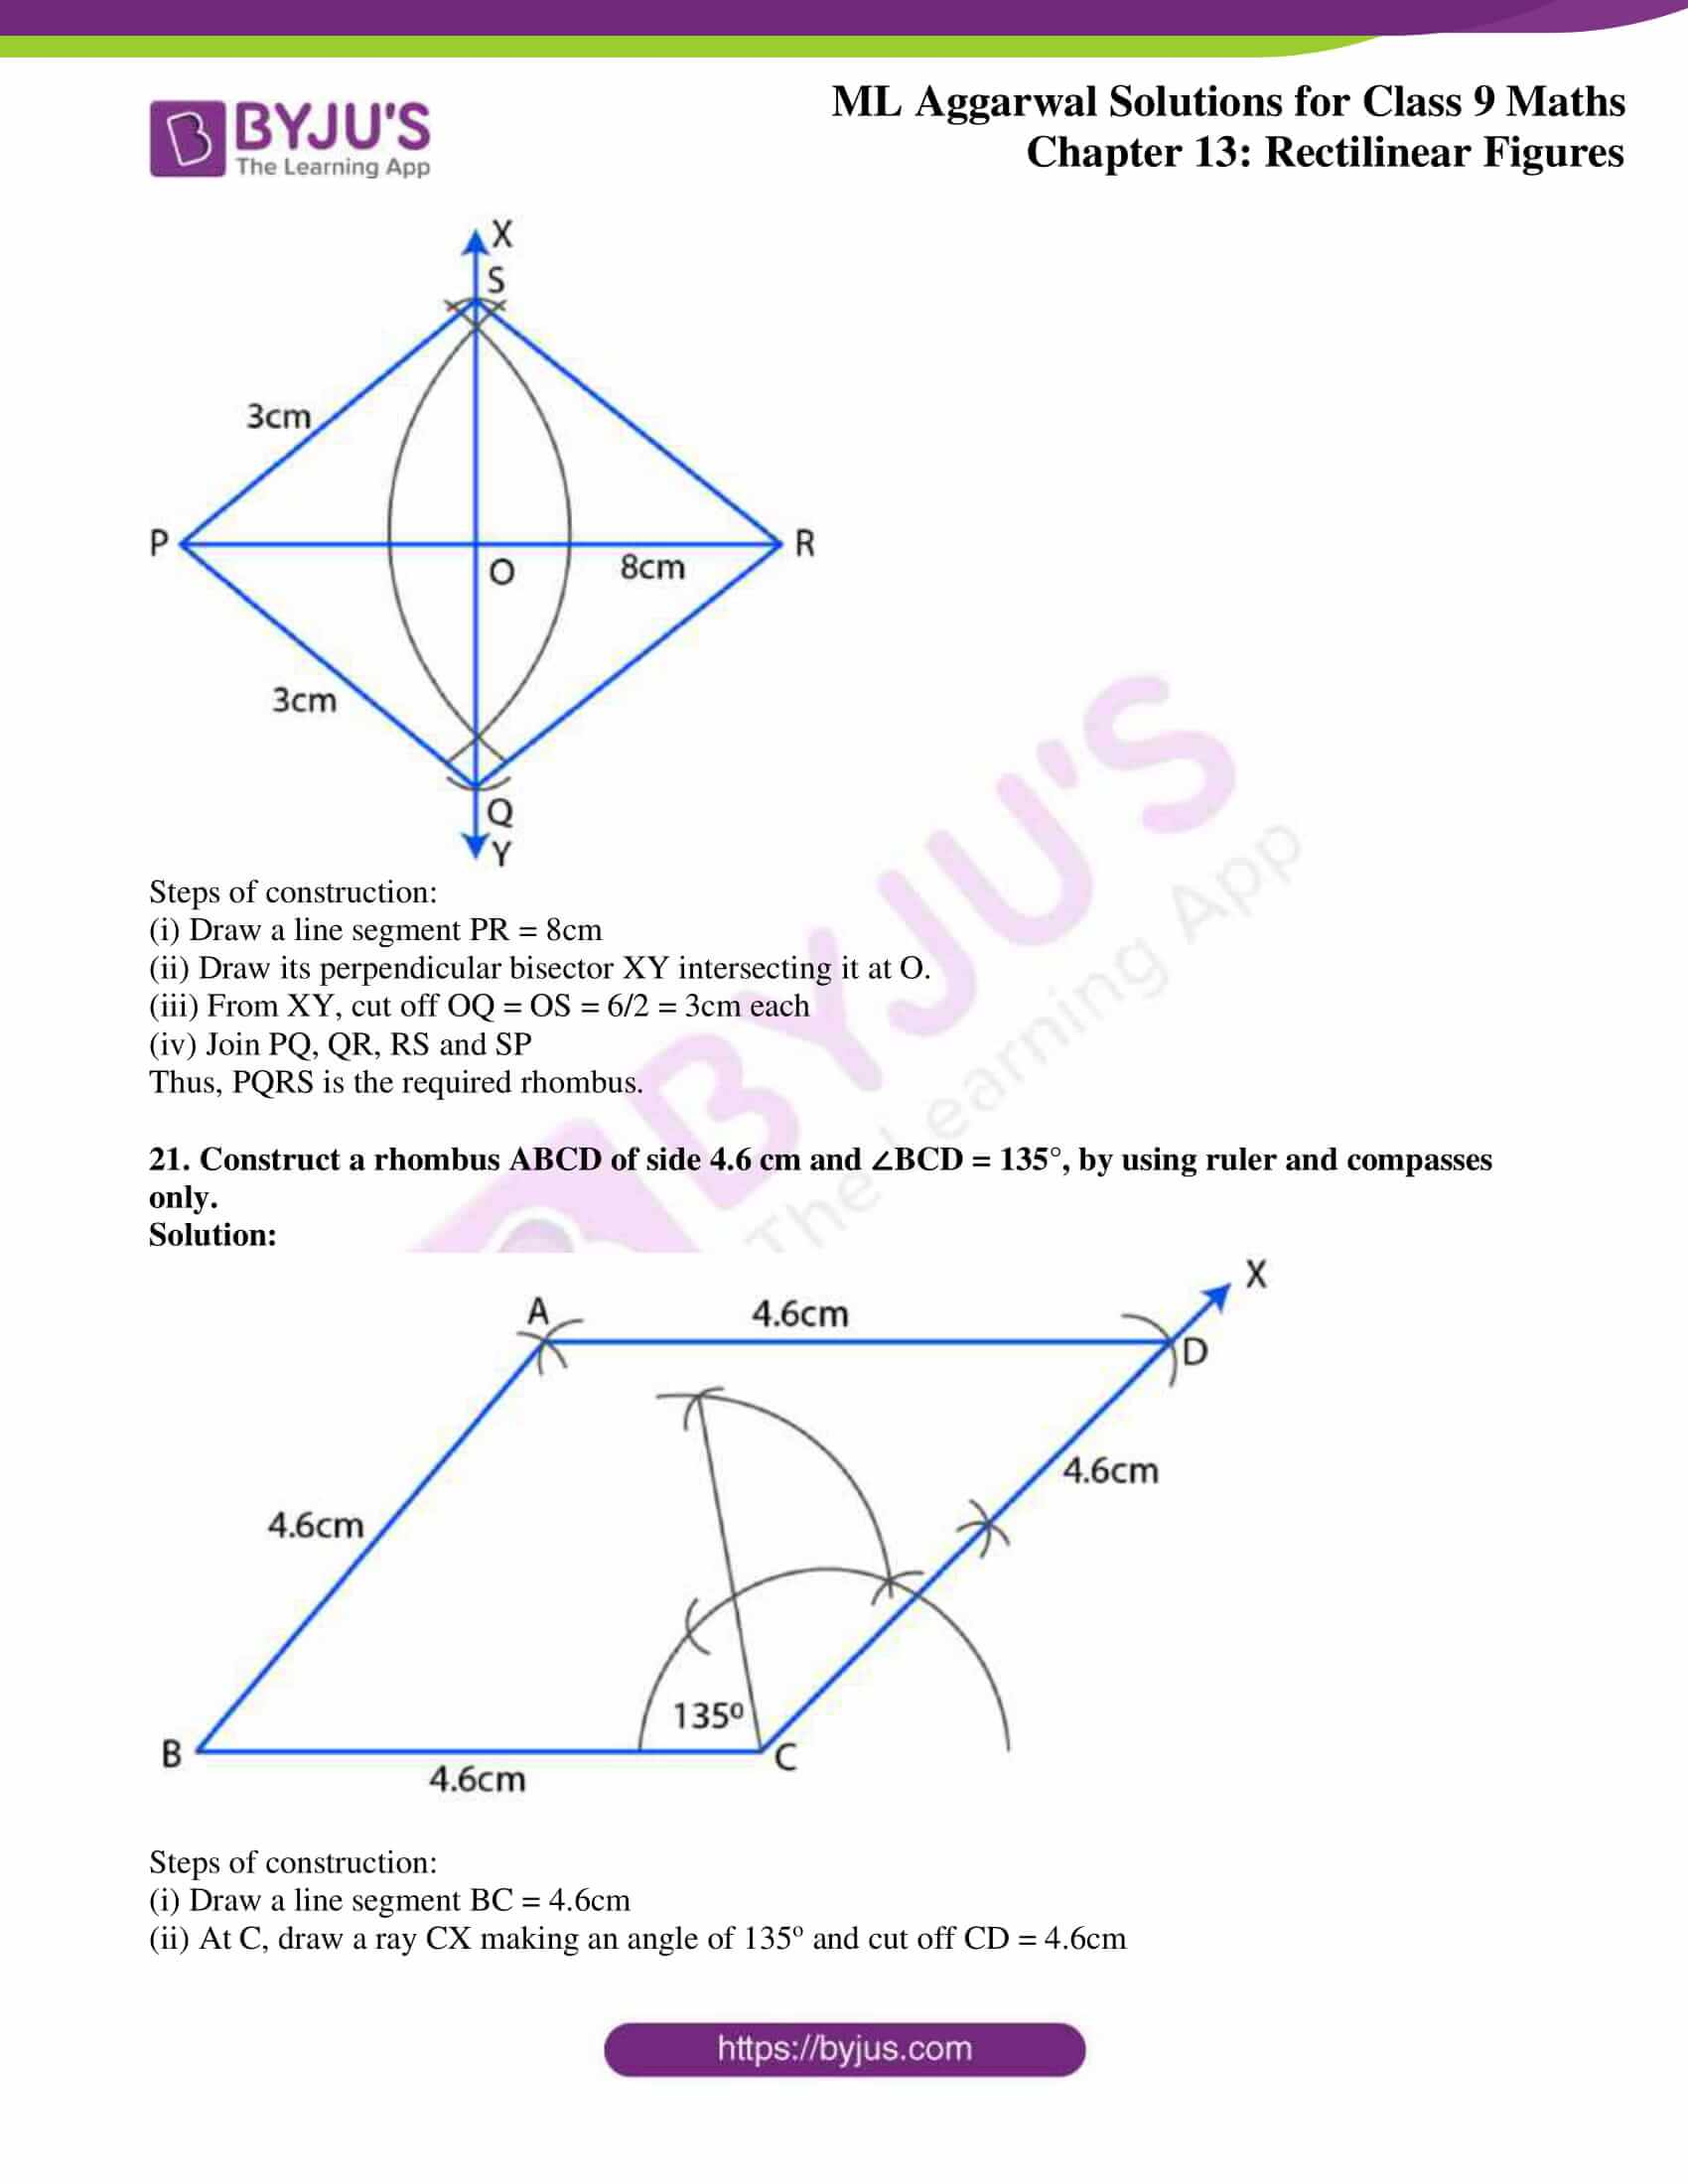 ml aggarwal solutions for class 9 maths chapter 13 36